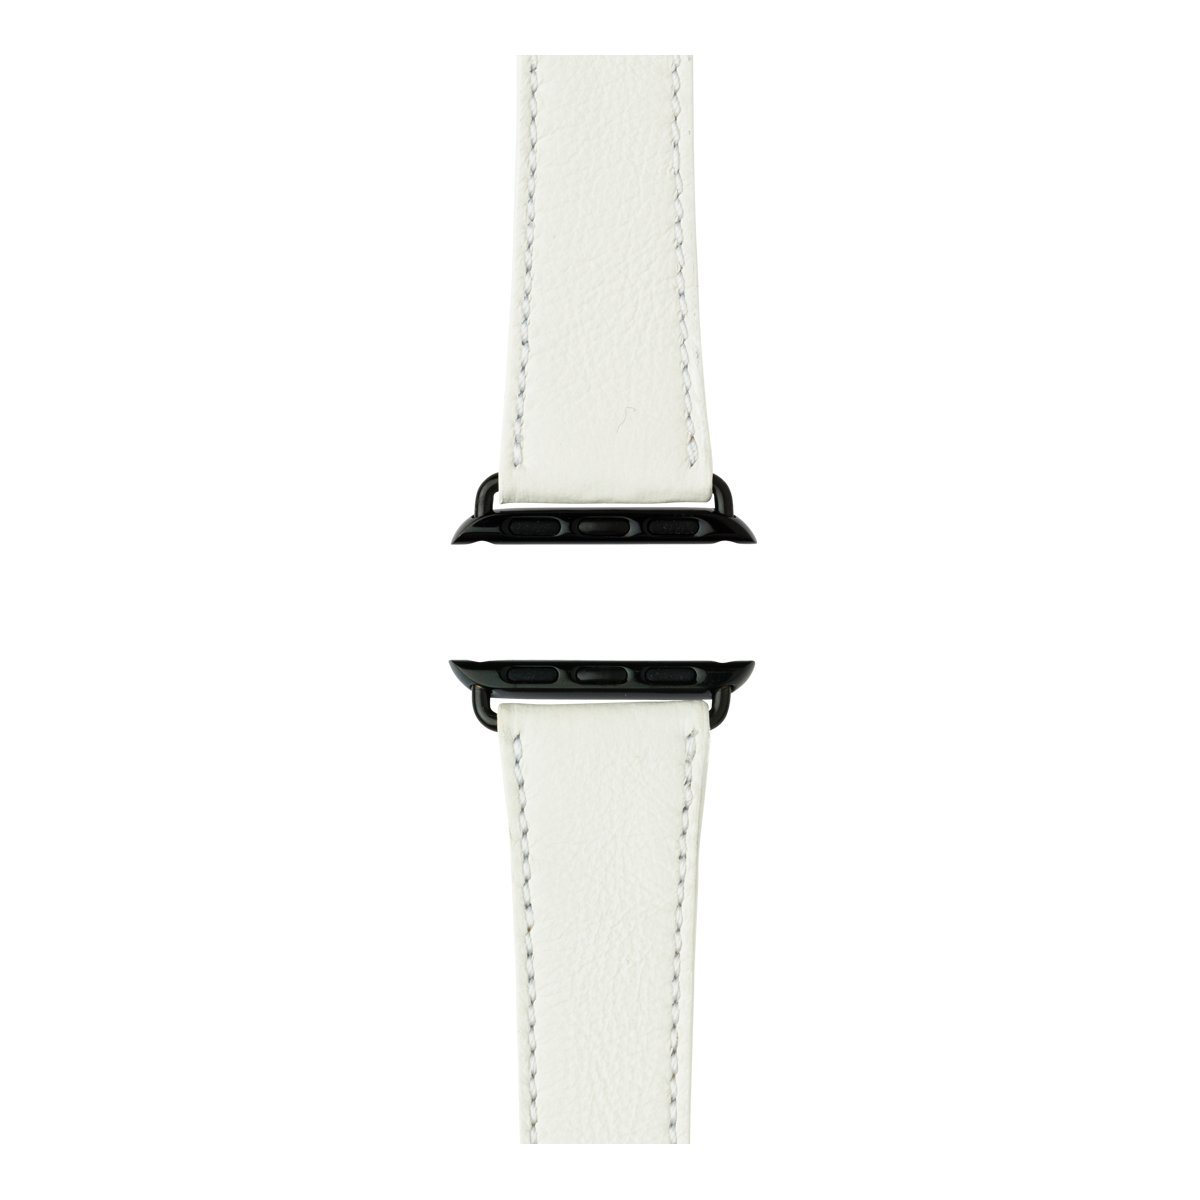 Roobaya | Premium Sauvage Leather Apple Watch Band in White | Includes Adapters matching the Color of the Apple Watch, Case Color:Space Black Stainless Steel, Size:42 mm by Roobaya (Image #3)